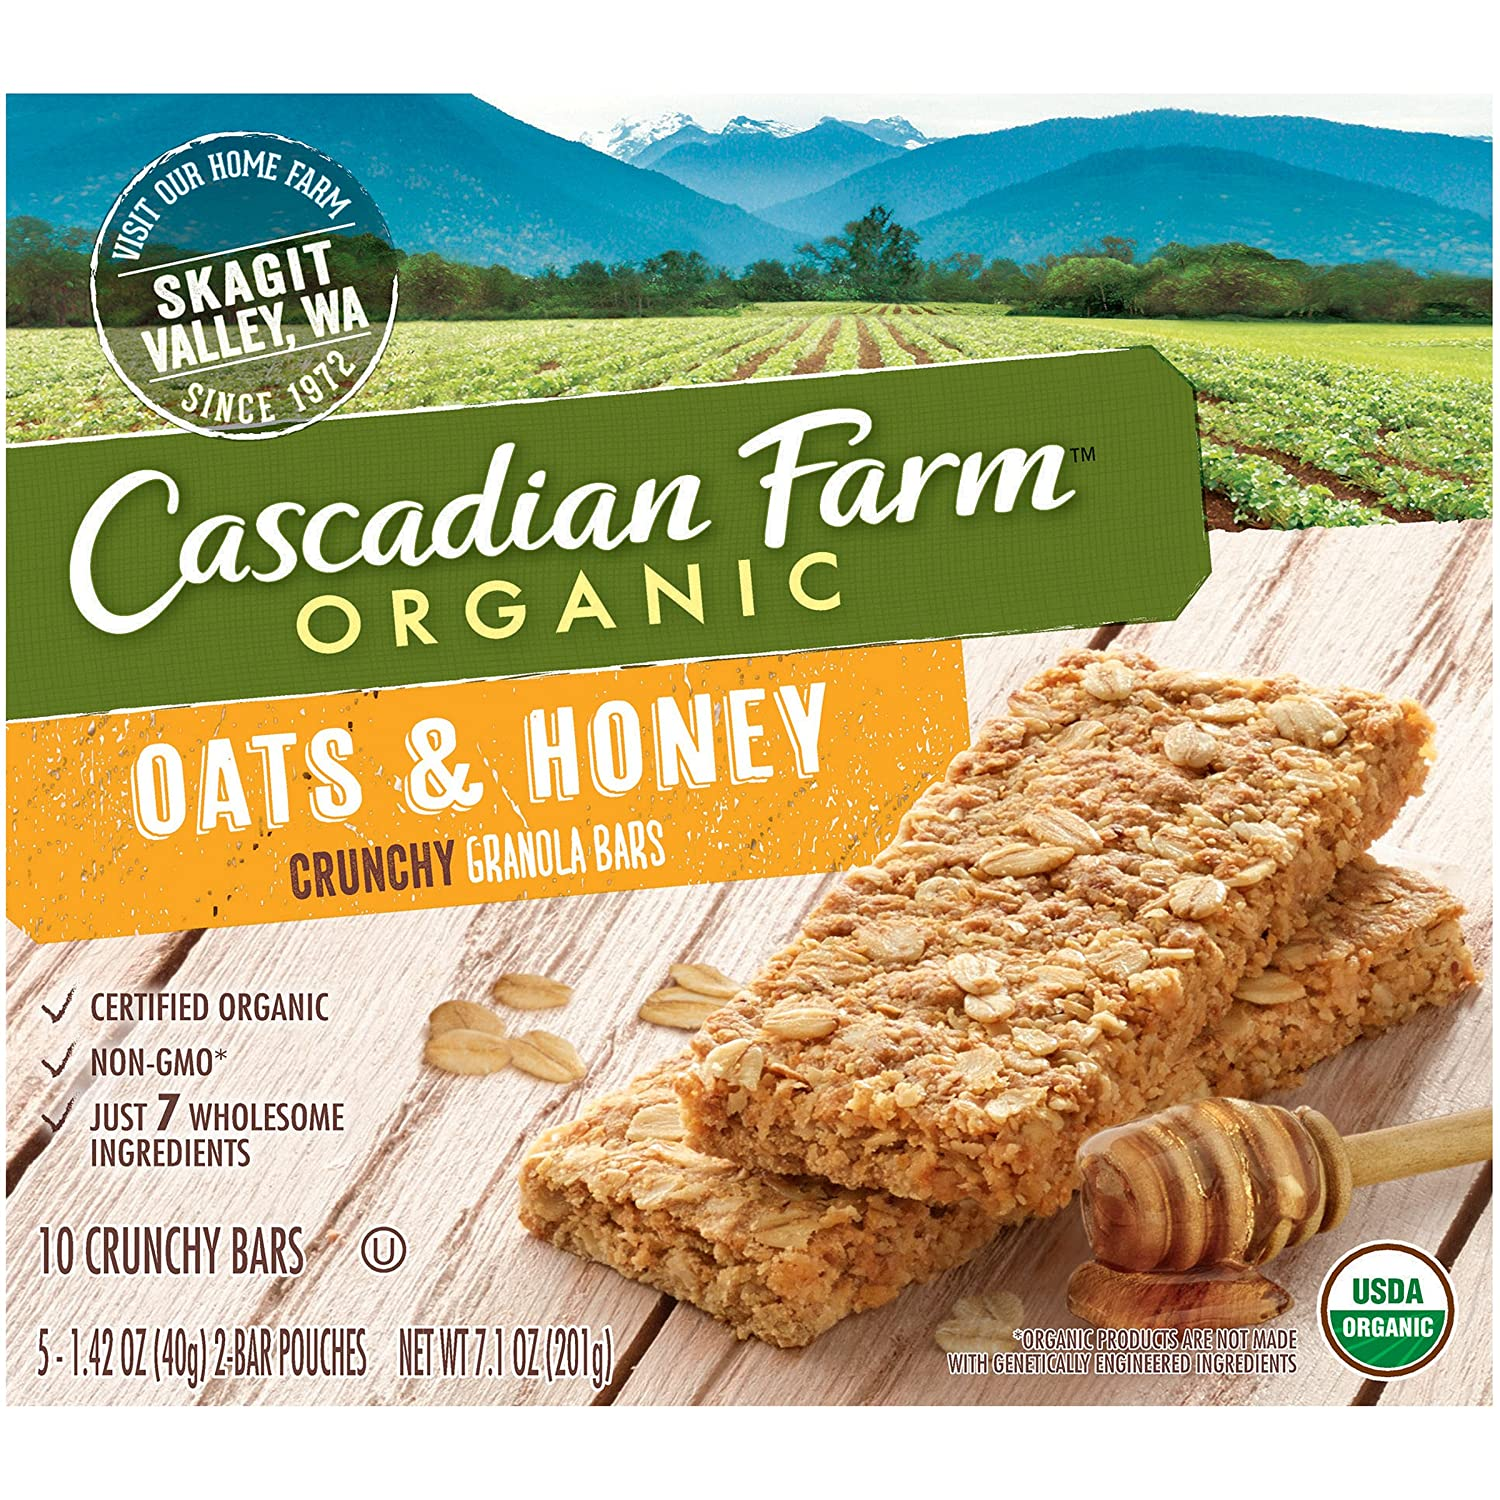 Cascadian Farm Organic Crunchy Granola Bar Non GMO Oats And Honey 10 Bars  In 5   1.42 Oz 2 Bar Pouches: Amazon.com: Grocery U0026 Gourmet Food